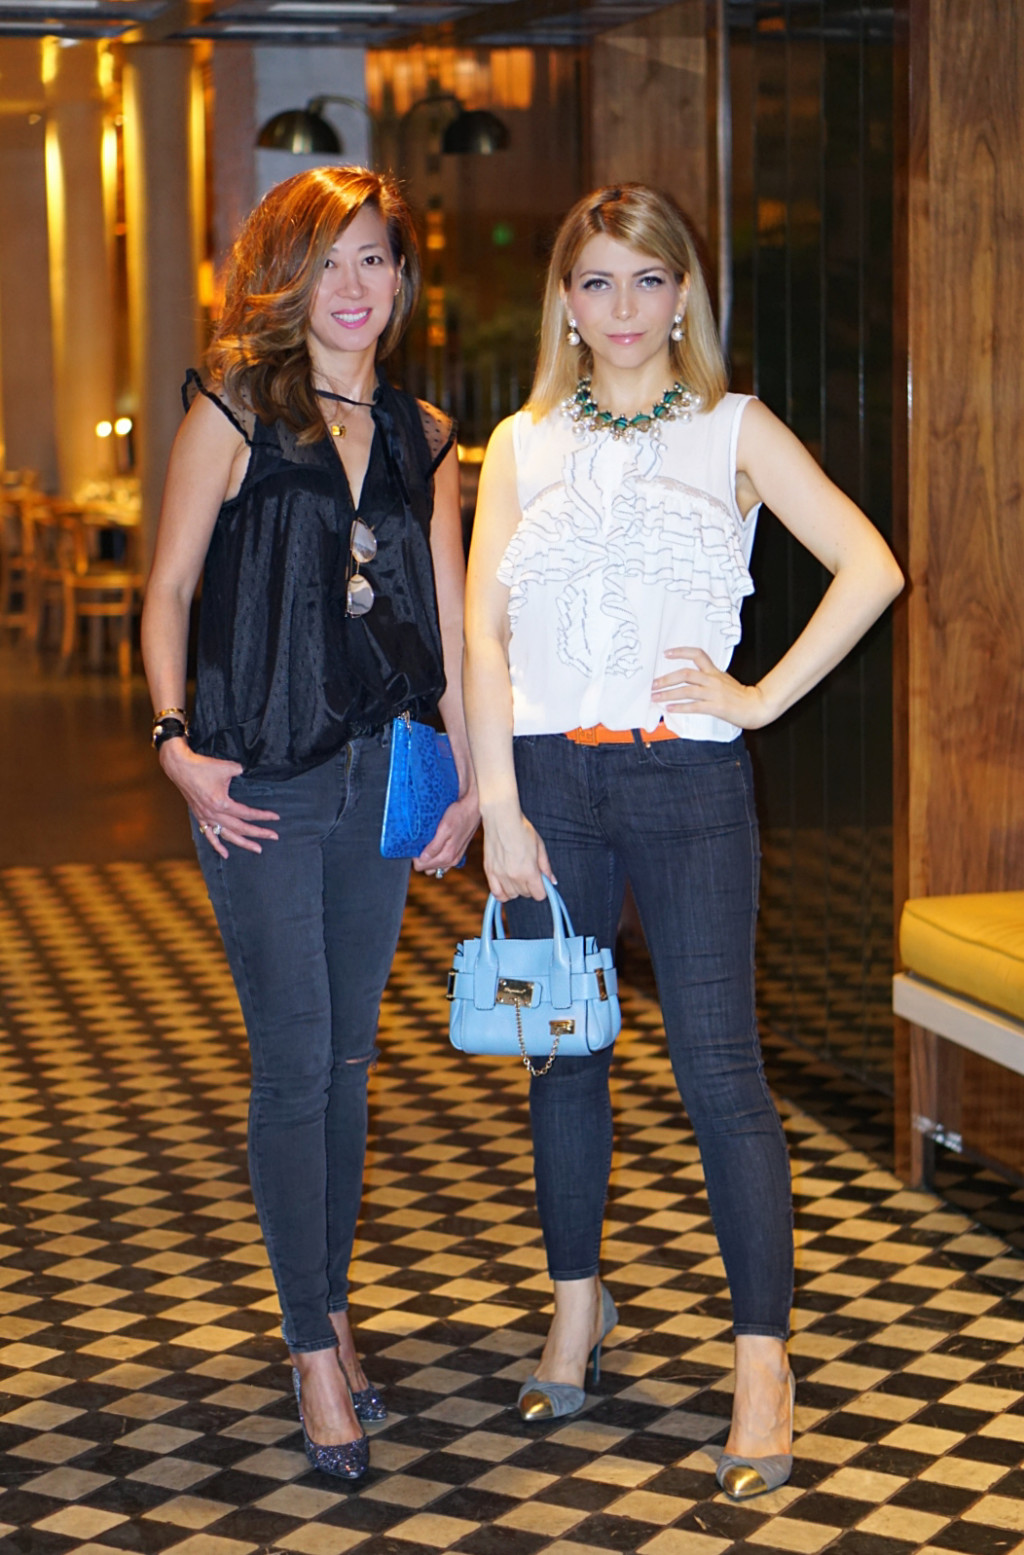 Yuliya Savytska - Blogger Dinner in Alcazar, Paris